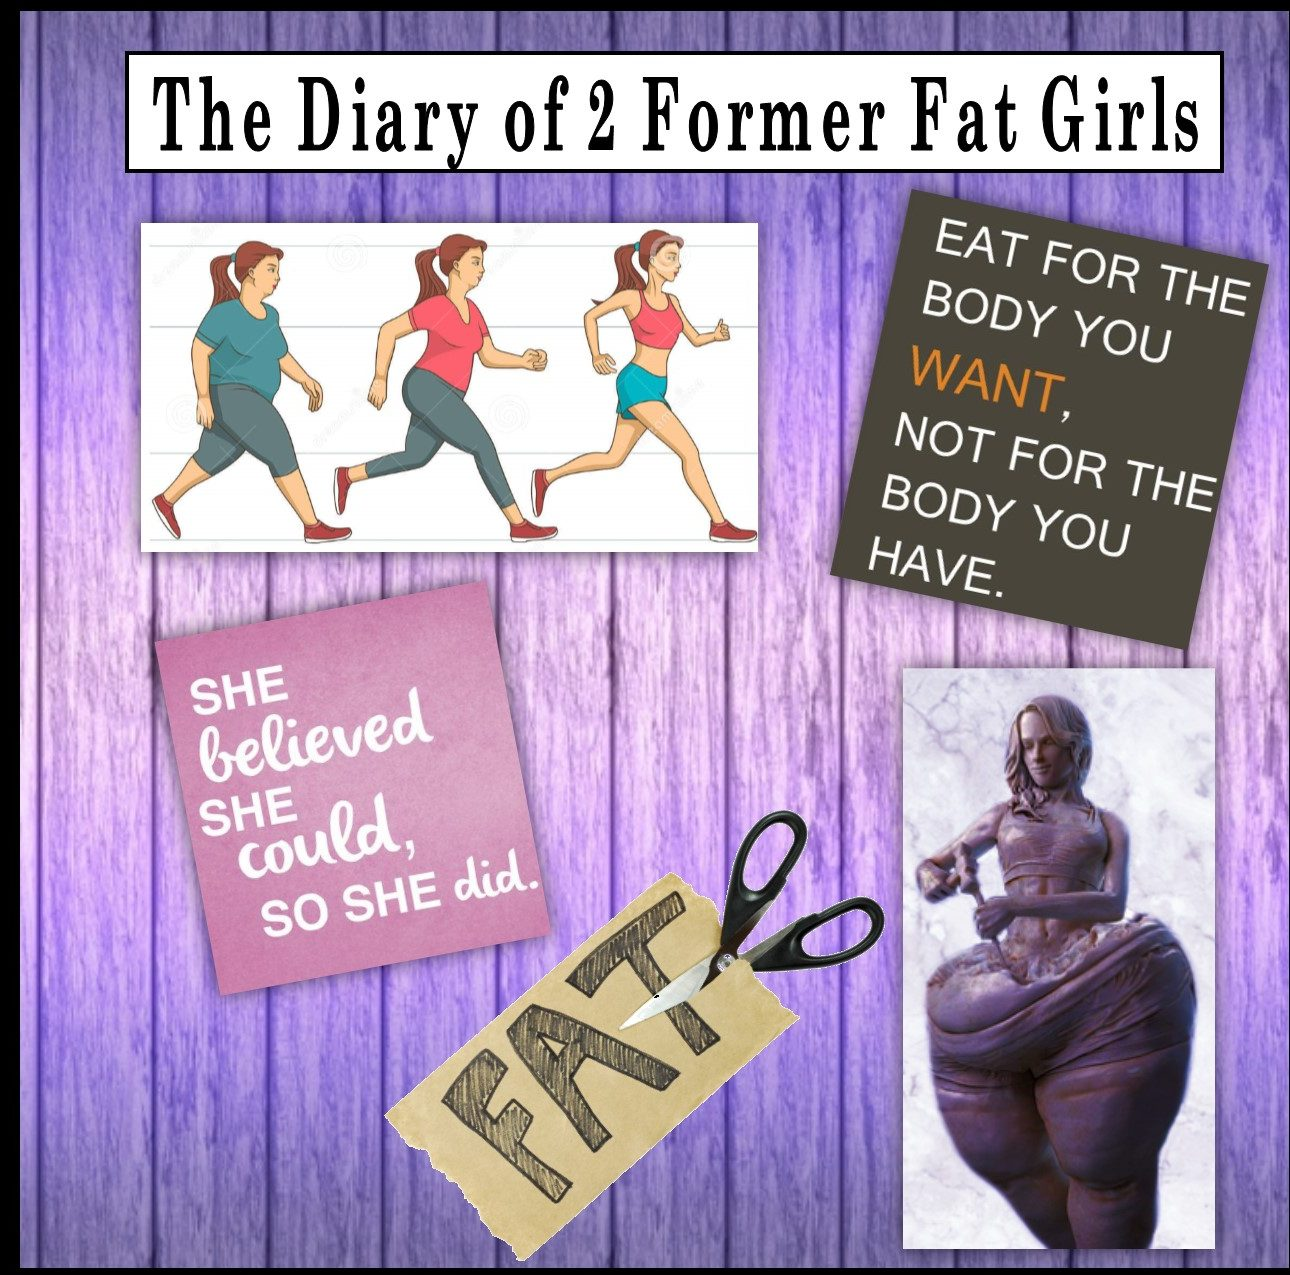 The Diary of 2 Former Fat Girls